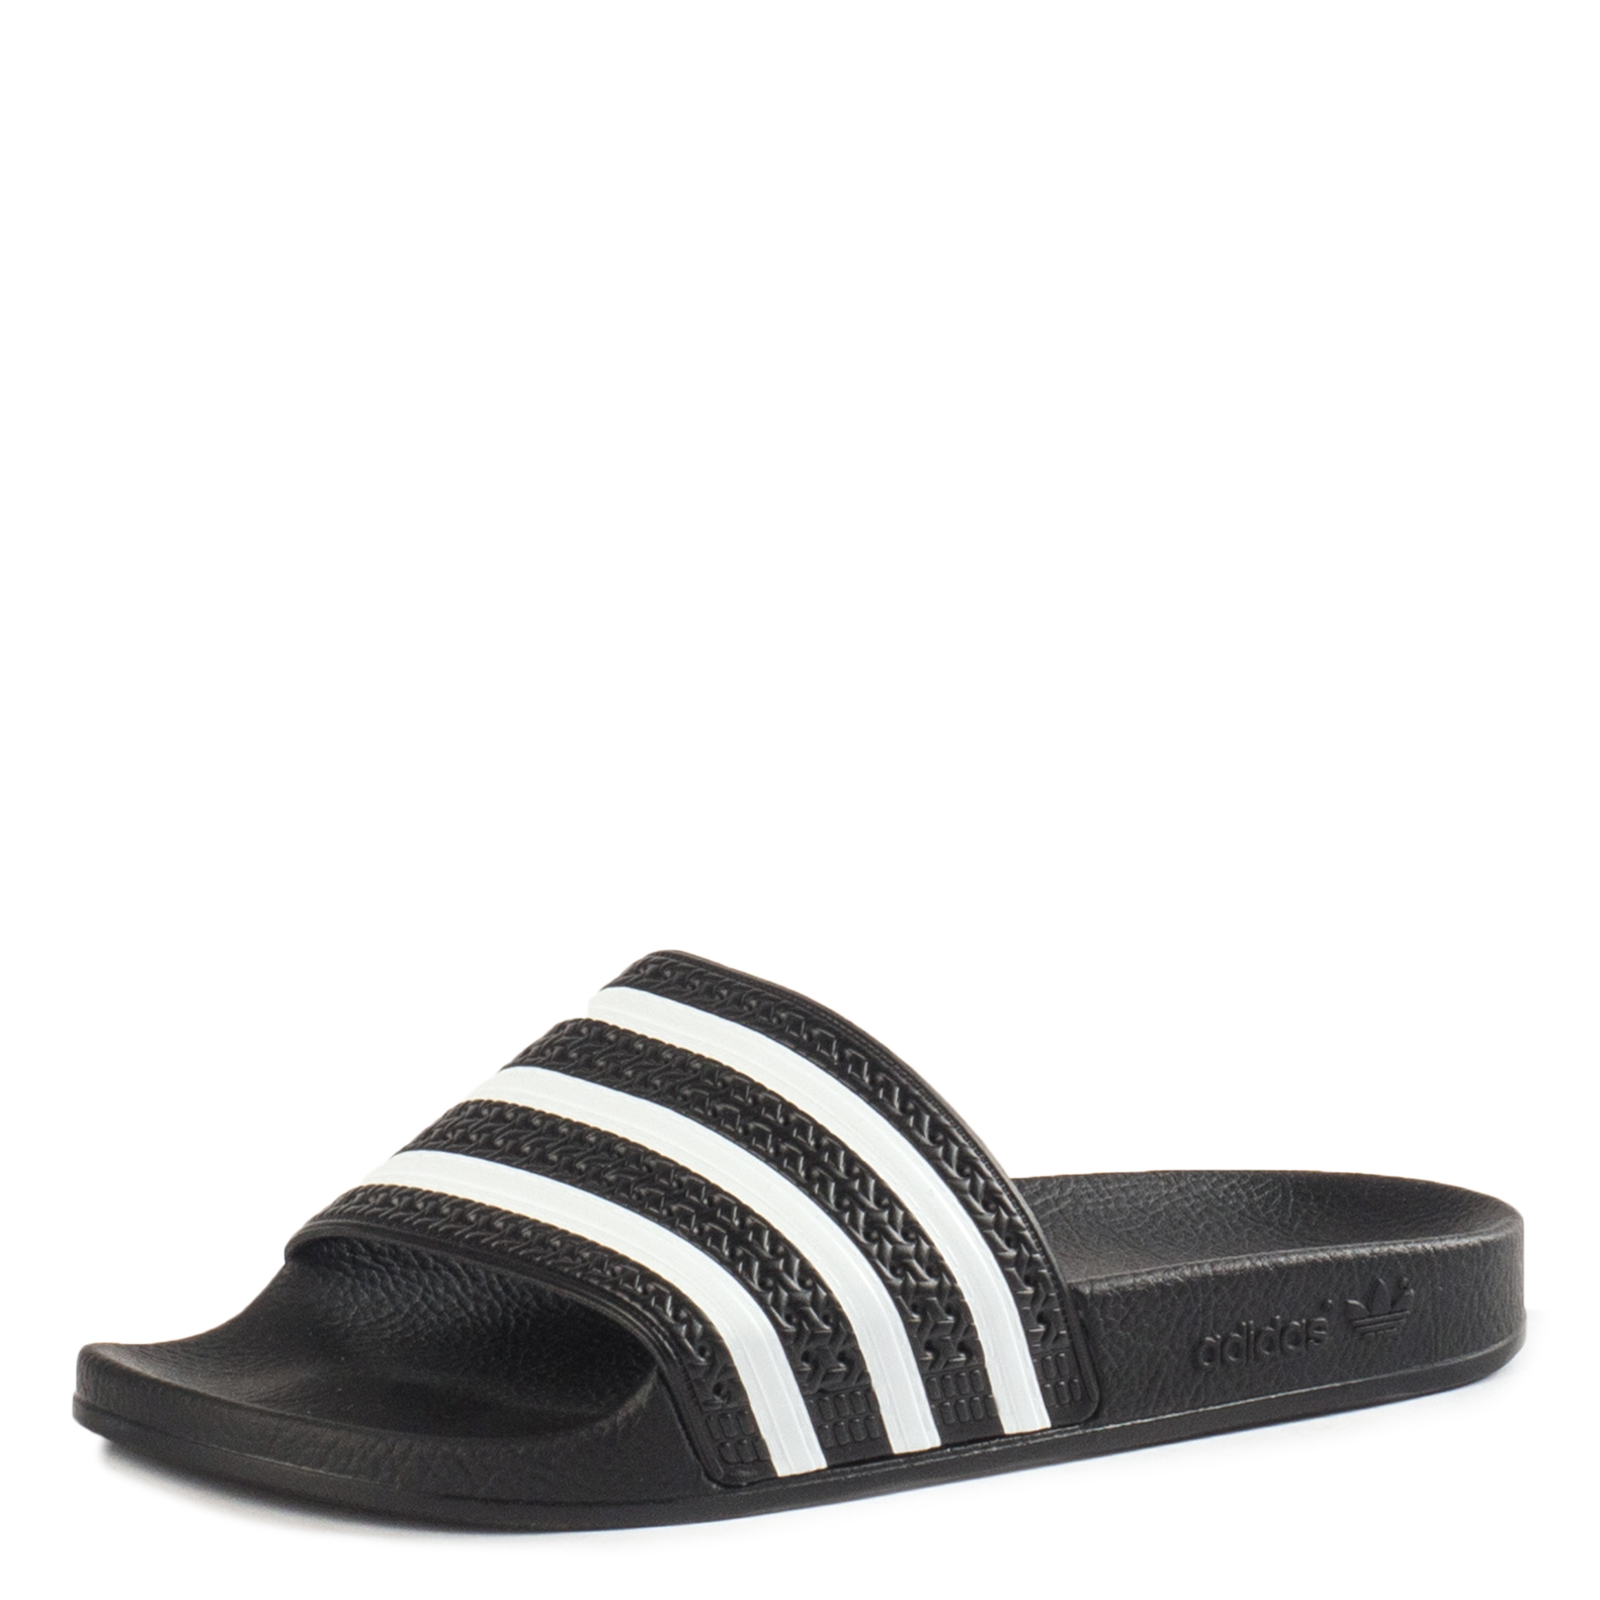 Slippers Adidas 280647 sports and entertainment for men